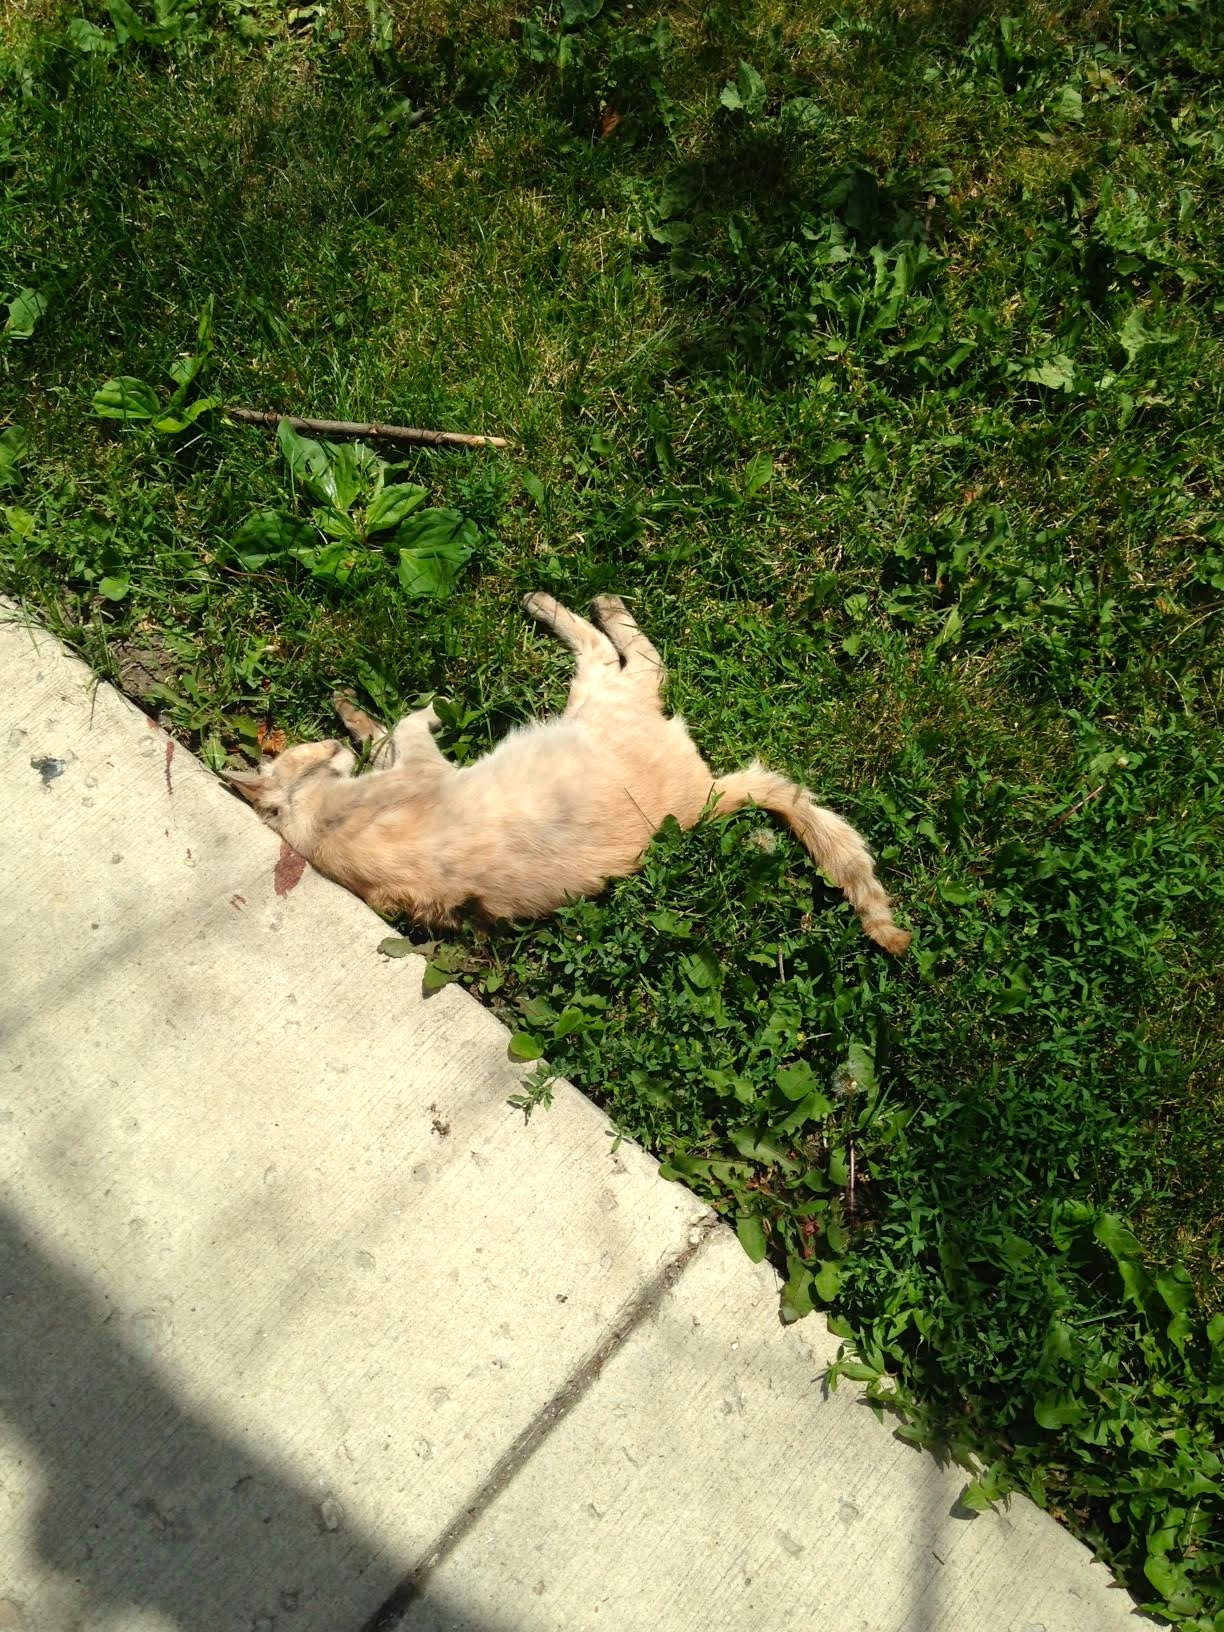 RIP Gringa, Another Dead Cat Found in Avondale - Cats In ...